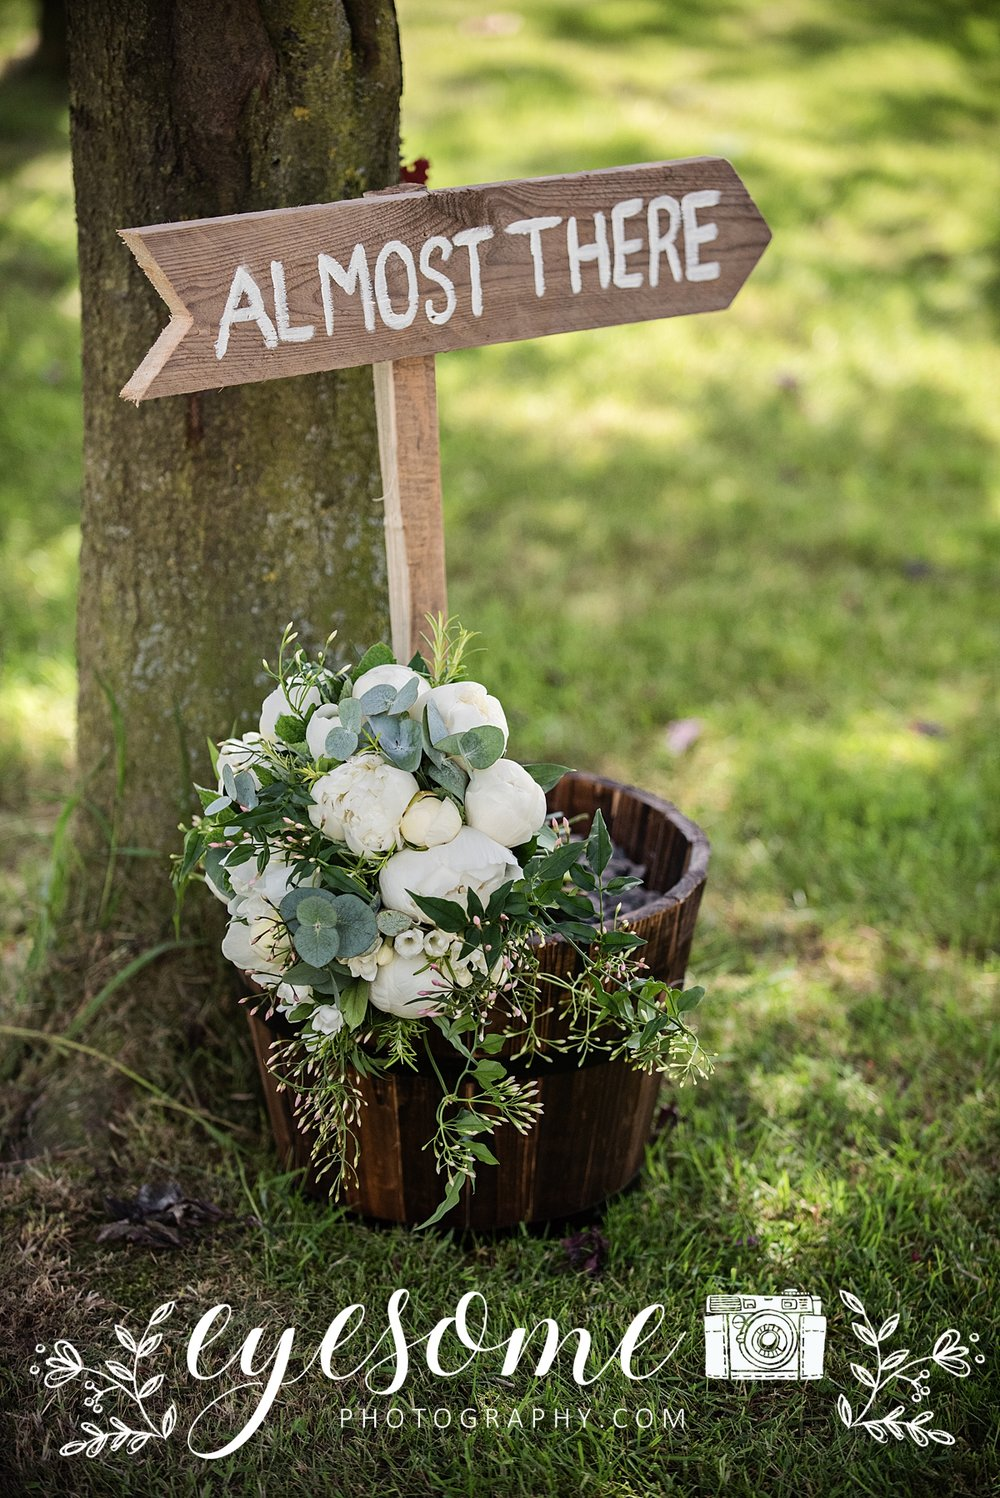 too good to miss the irony in this directional sign intended for wedding guests